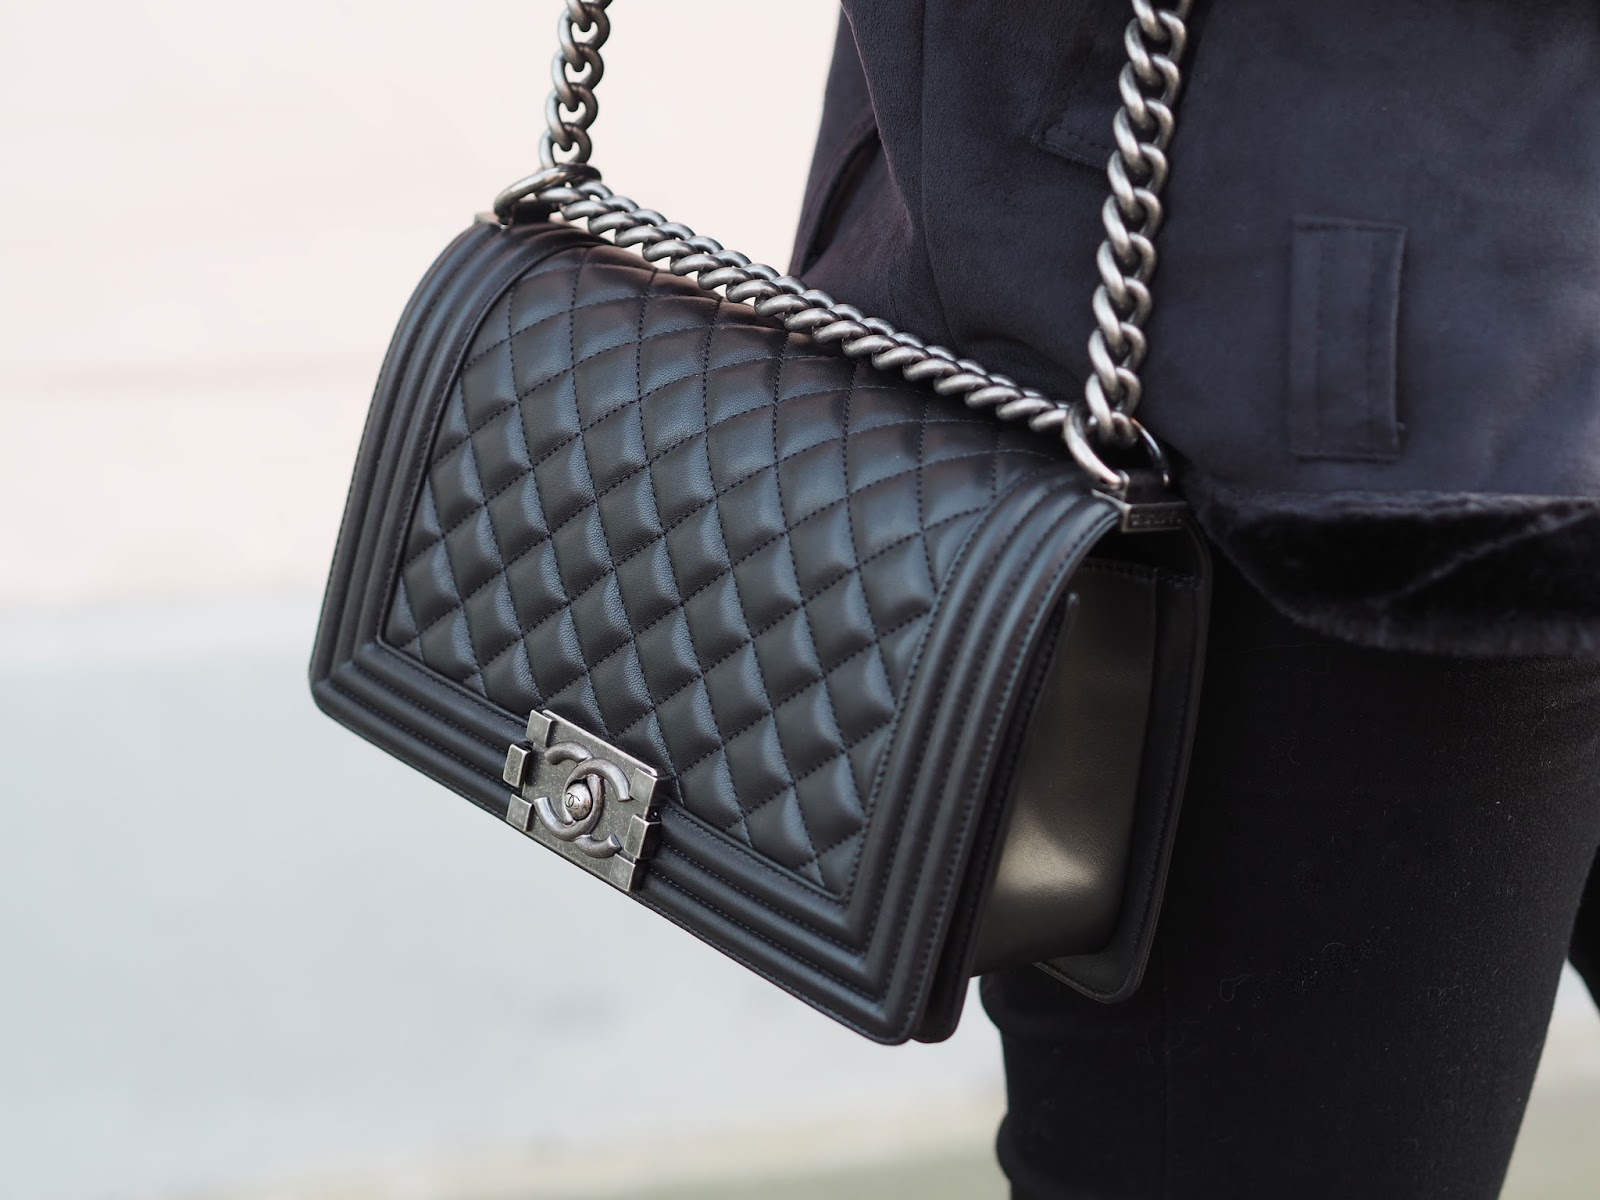 Chanel Boy Bag Review